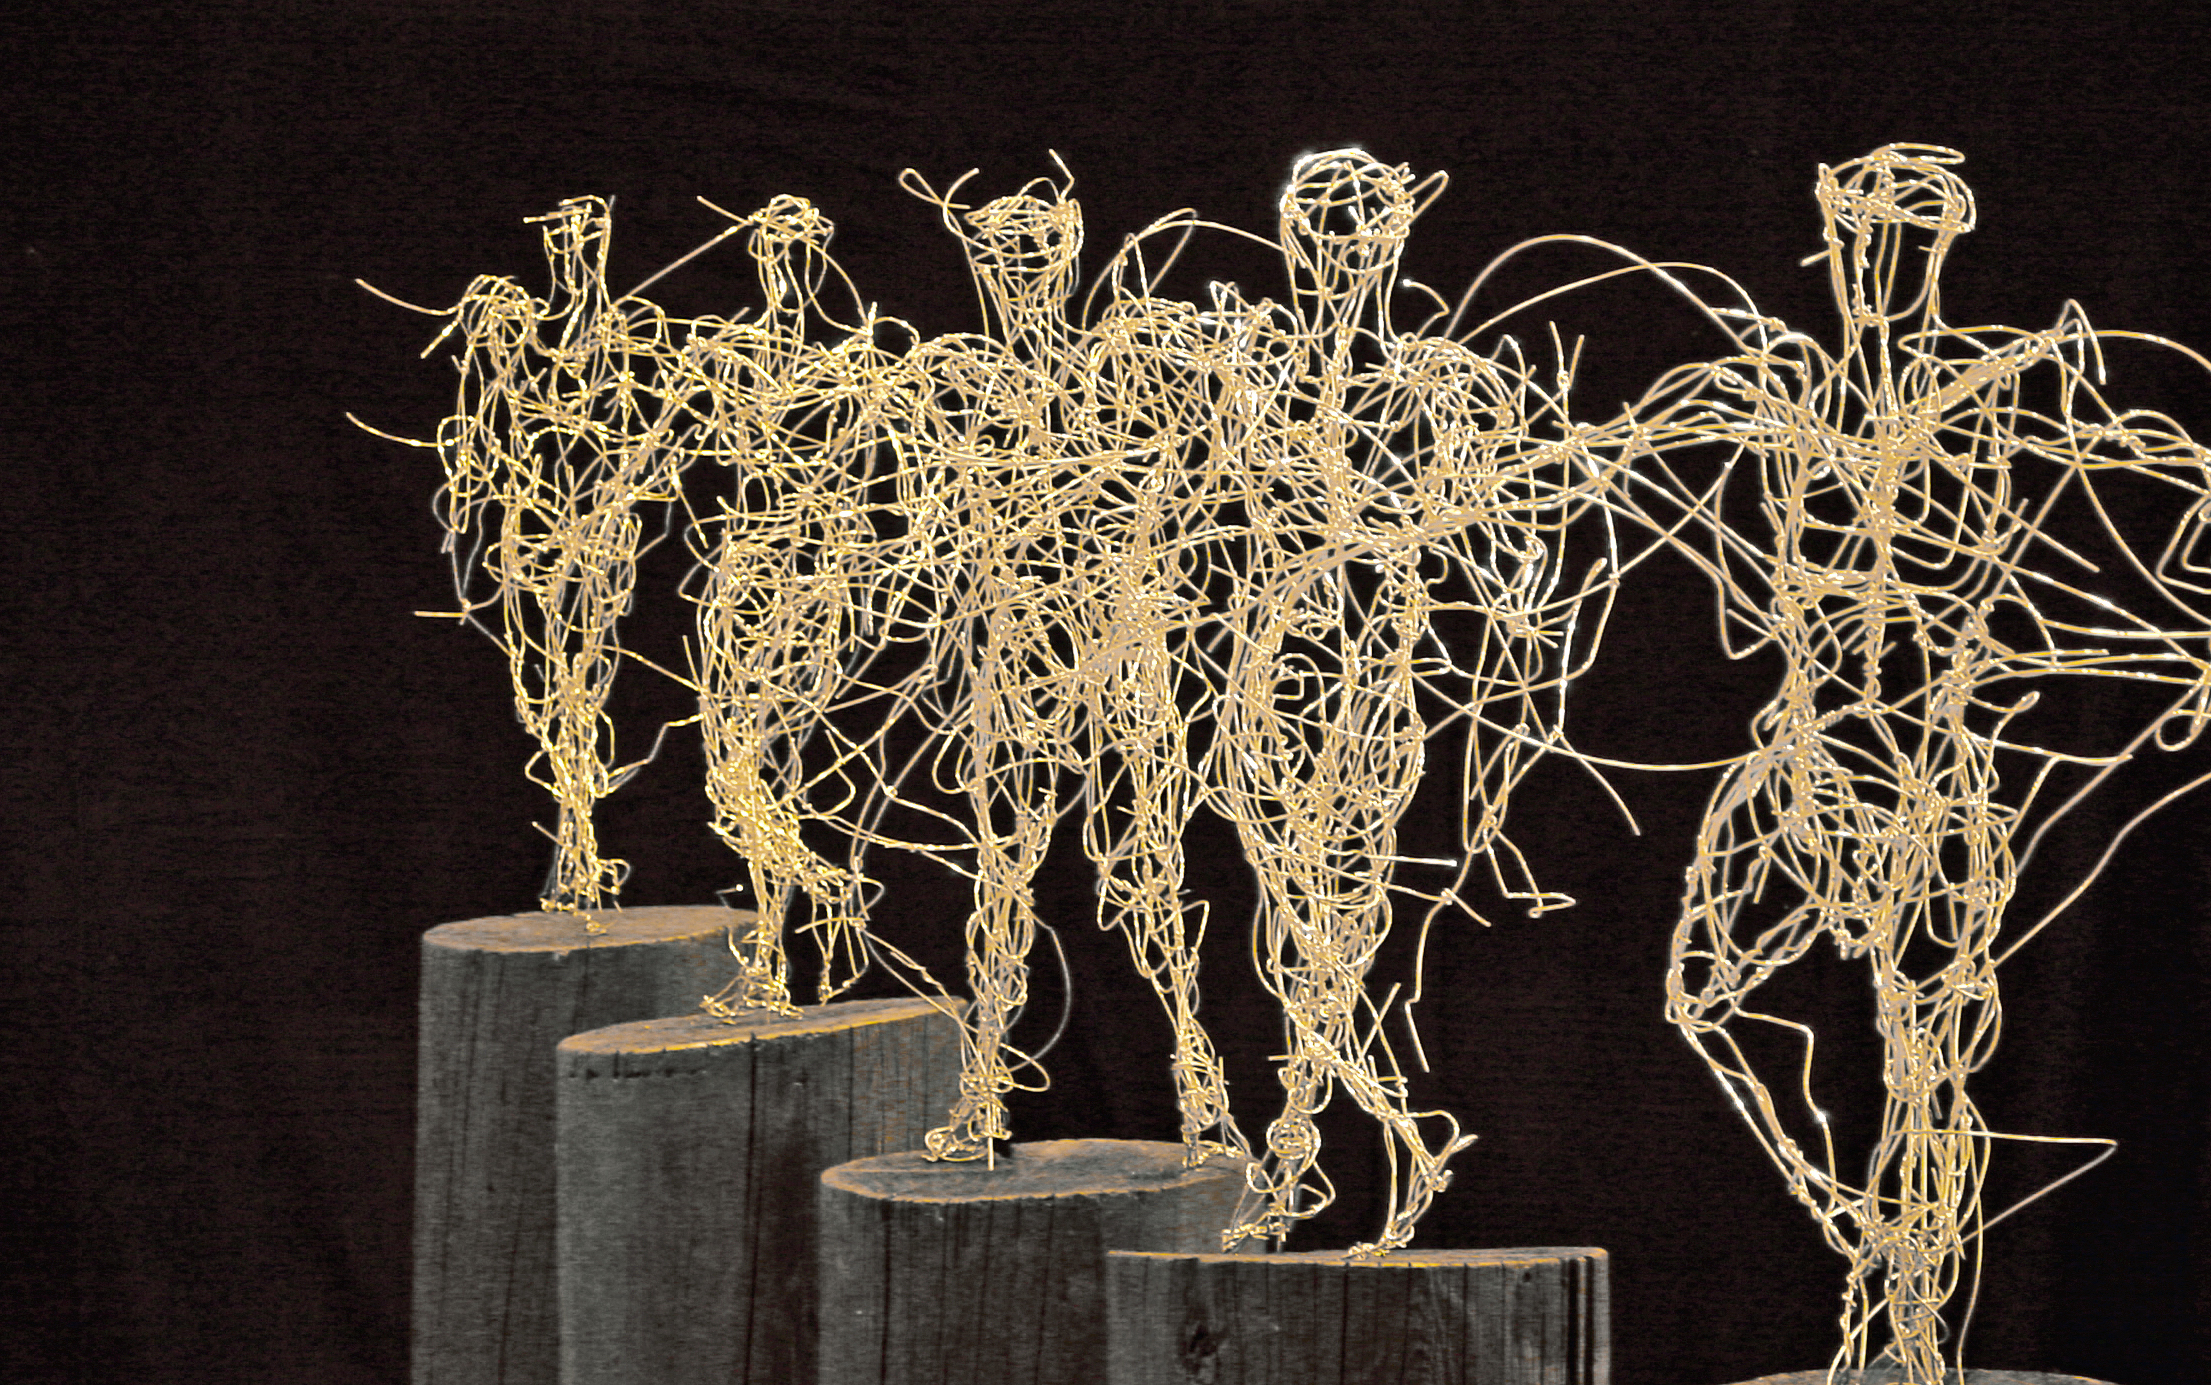 """Walking Upright"", copper wire, nickel-plated, wood, 150 x 120 x 35 cm, 2002"